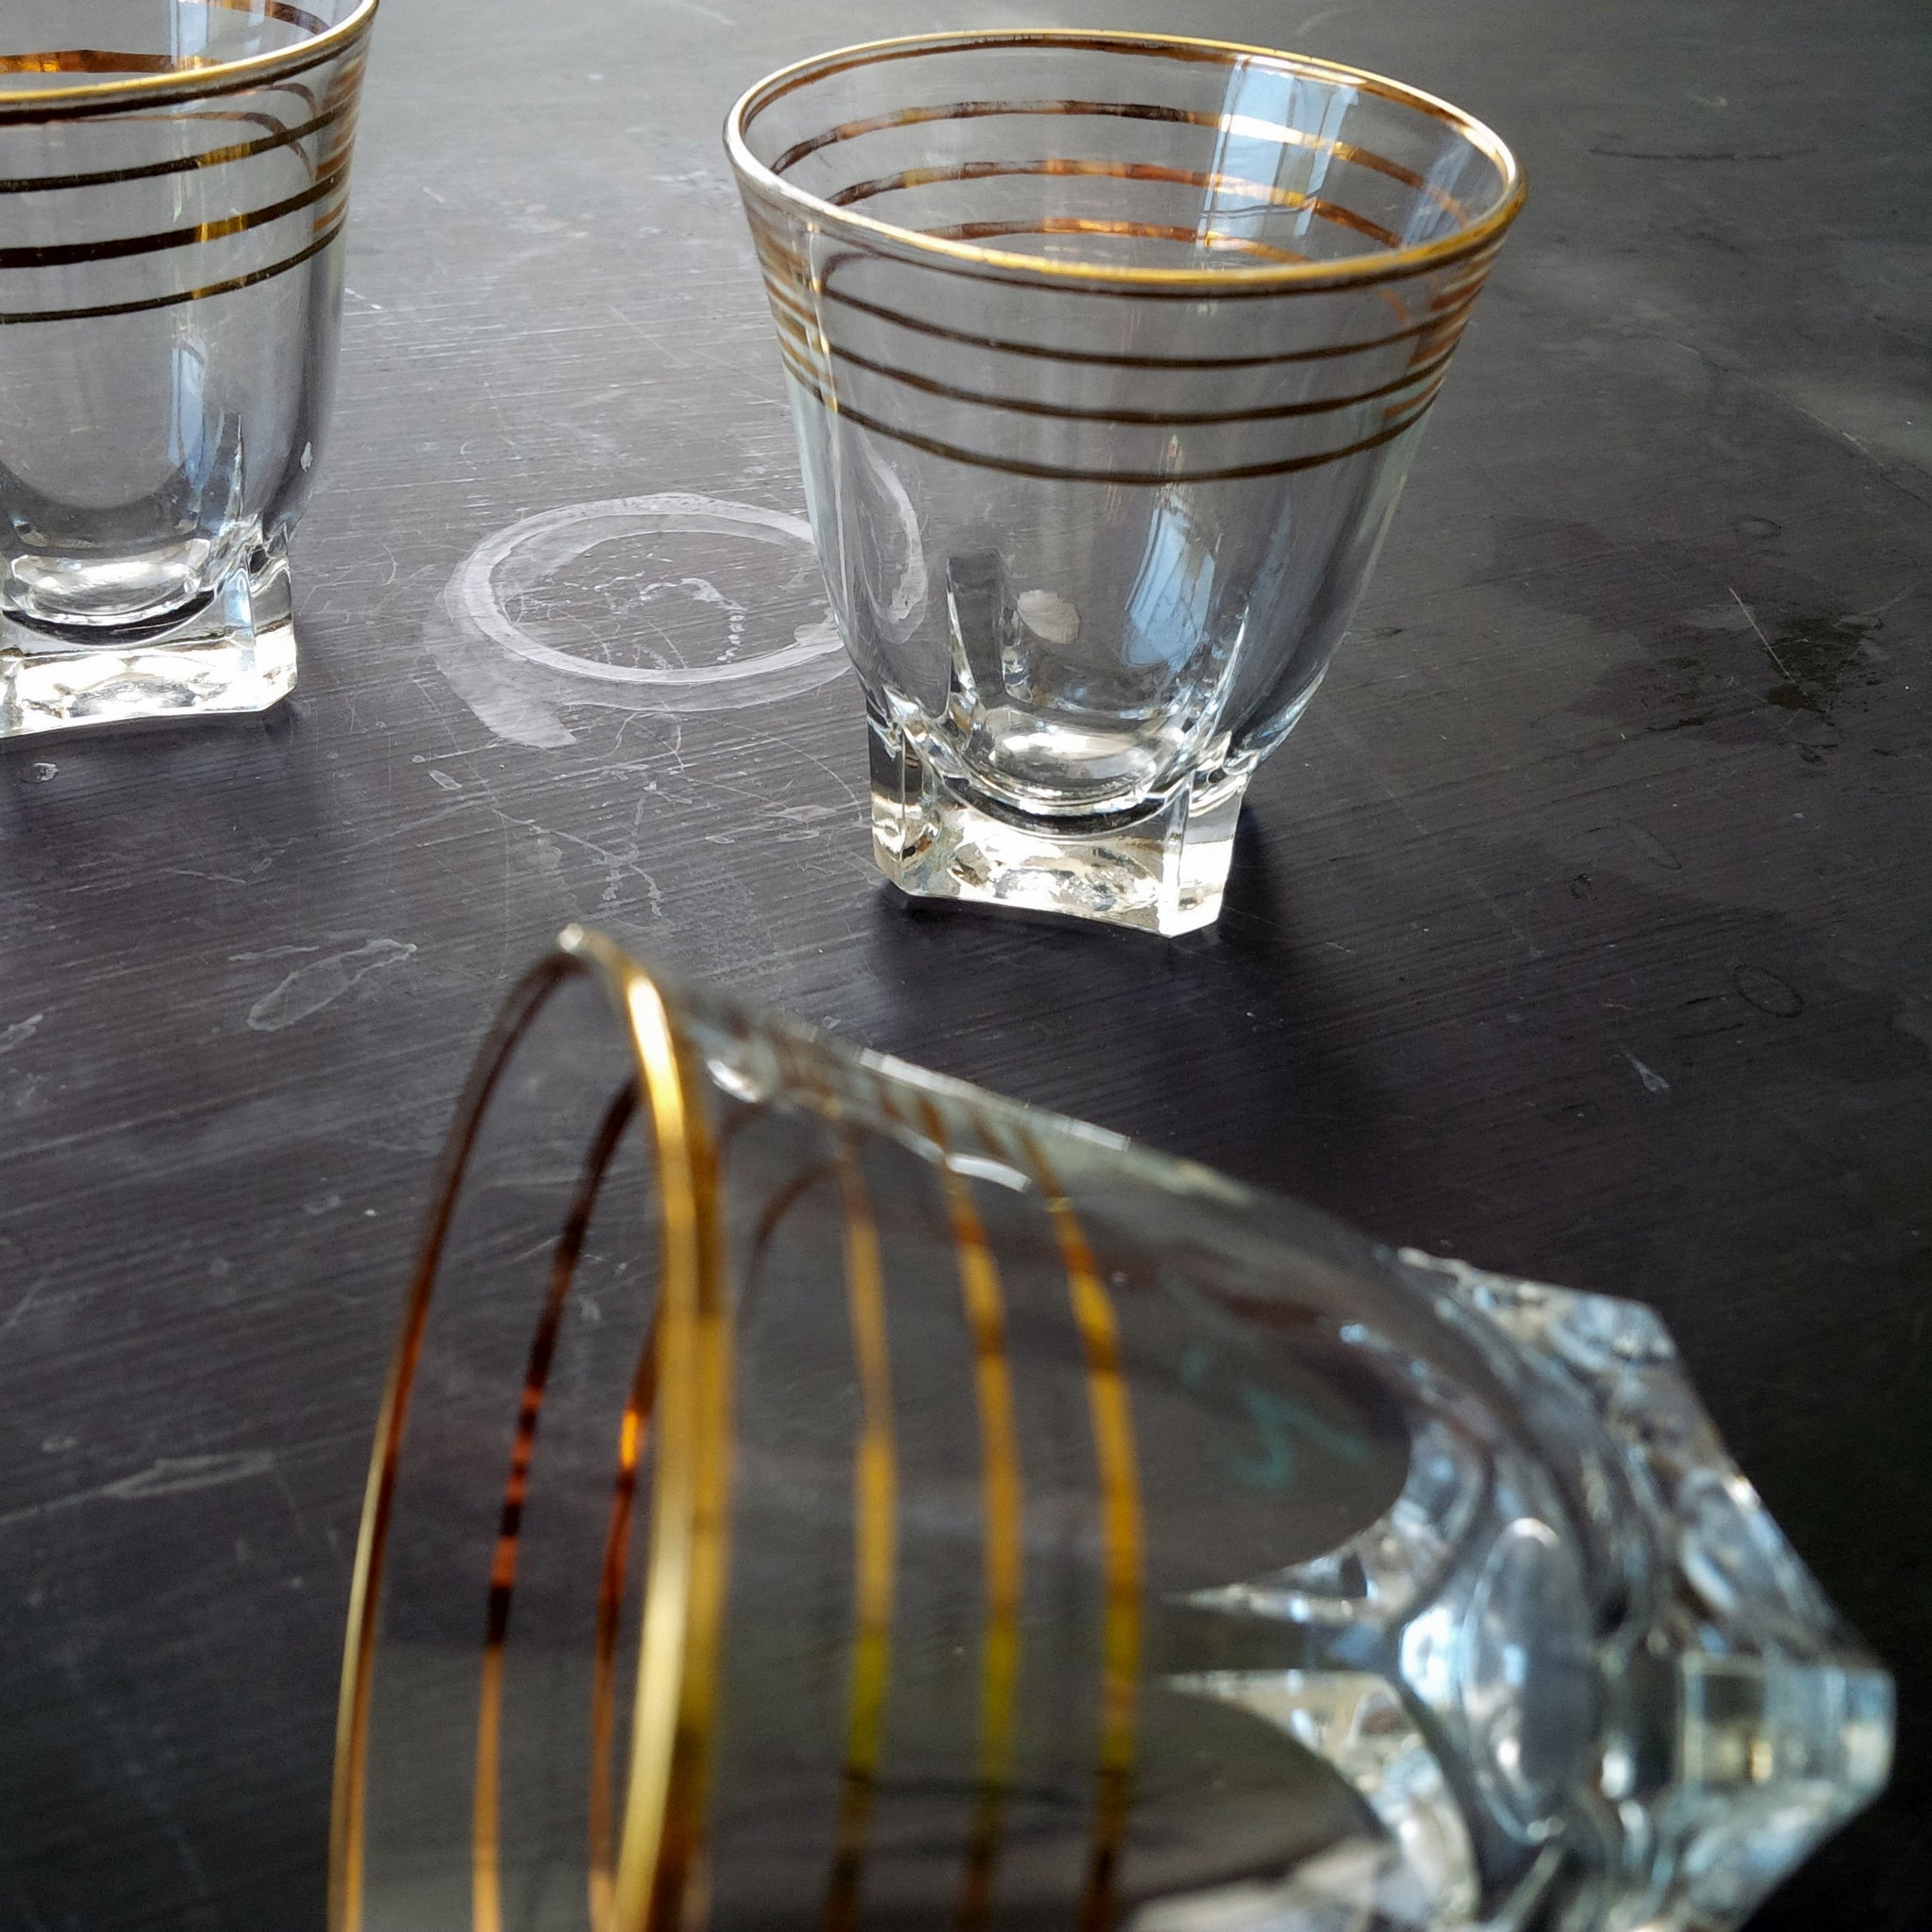 Vintage French Shot Glasses - Gold Stripes - Vintage Barware Made in France